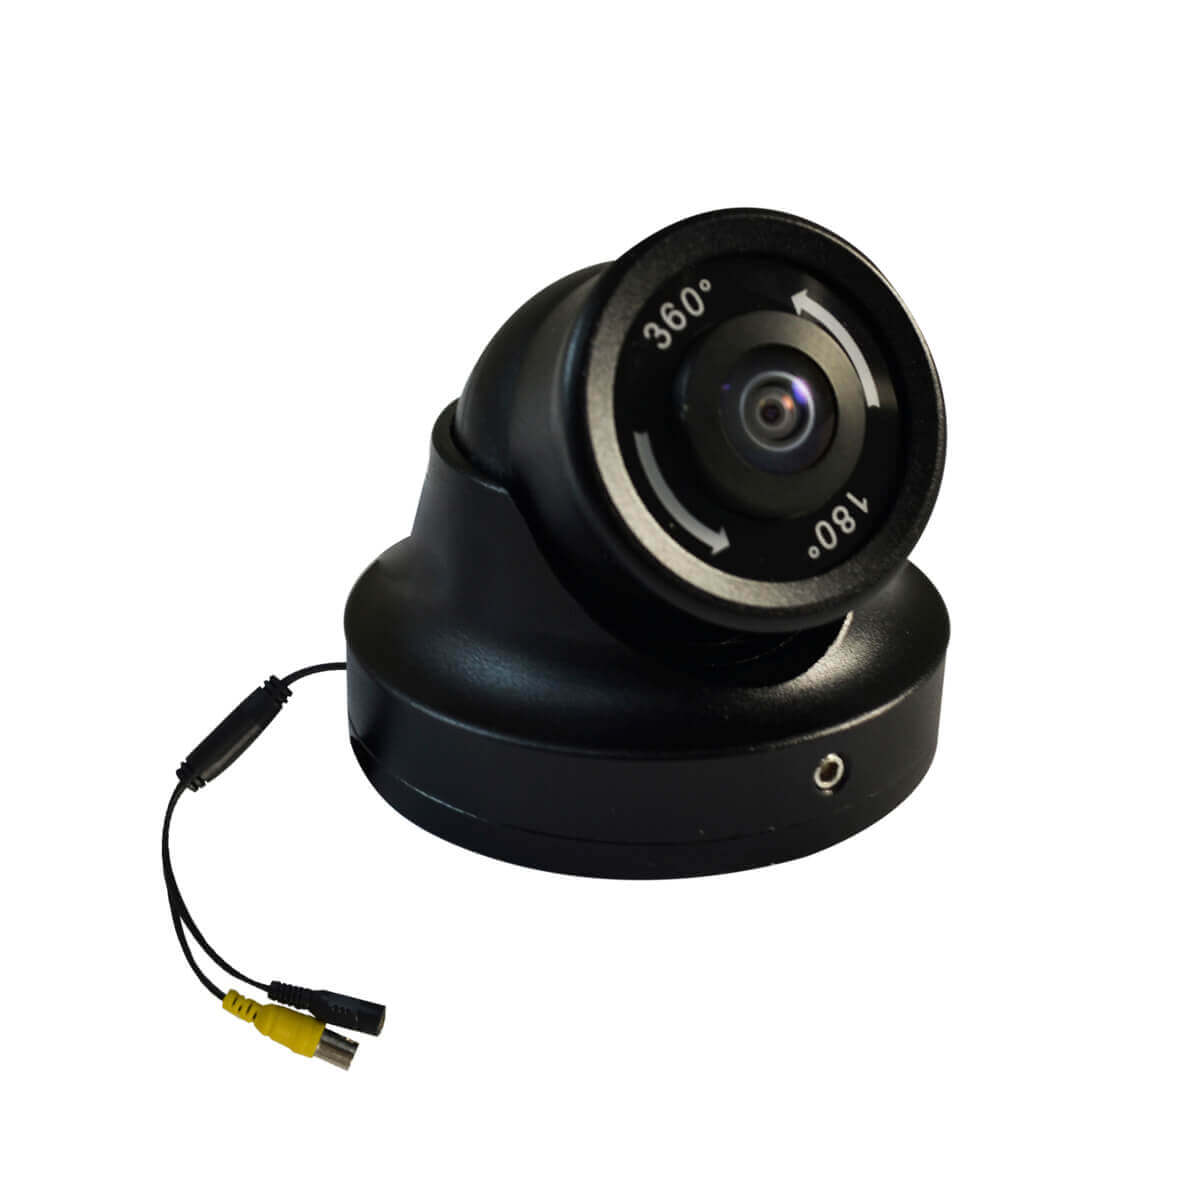 Mini camara tipo domo, Sensor Sony CCD 1/3, resolucion 600TVL, IP66